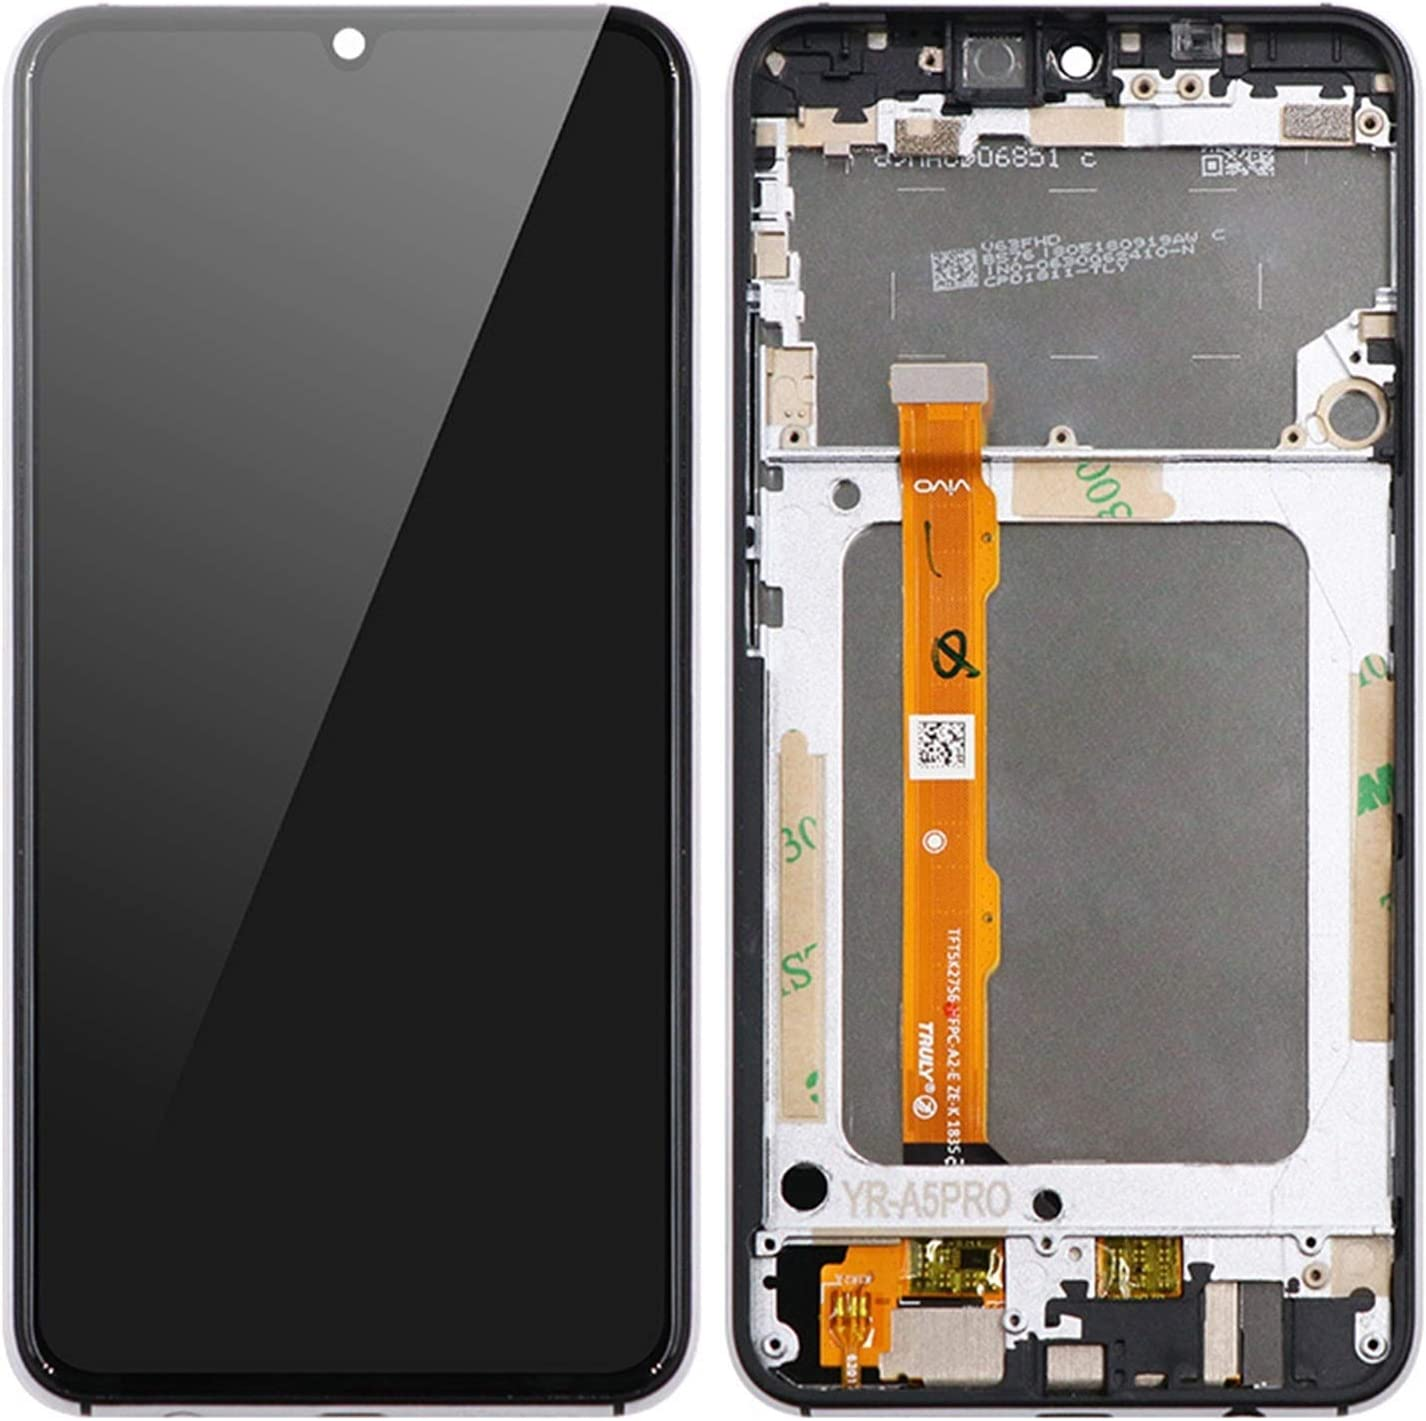 LYXDZW 6.3Inch LCD Display Las Vegas Mall Fit Max 85% OFF for Scre Touch A5 Pro UMI Umidigi